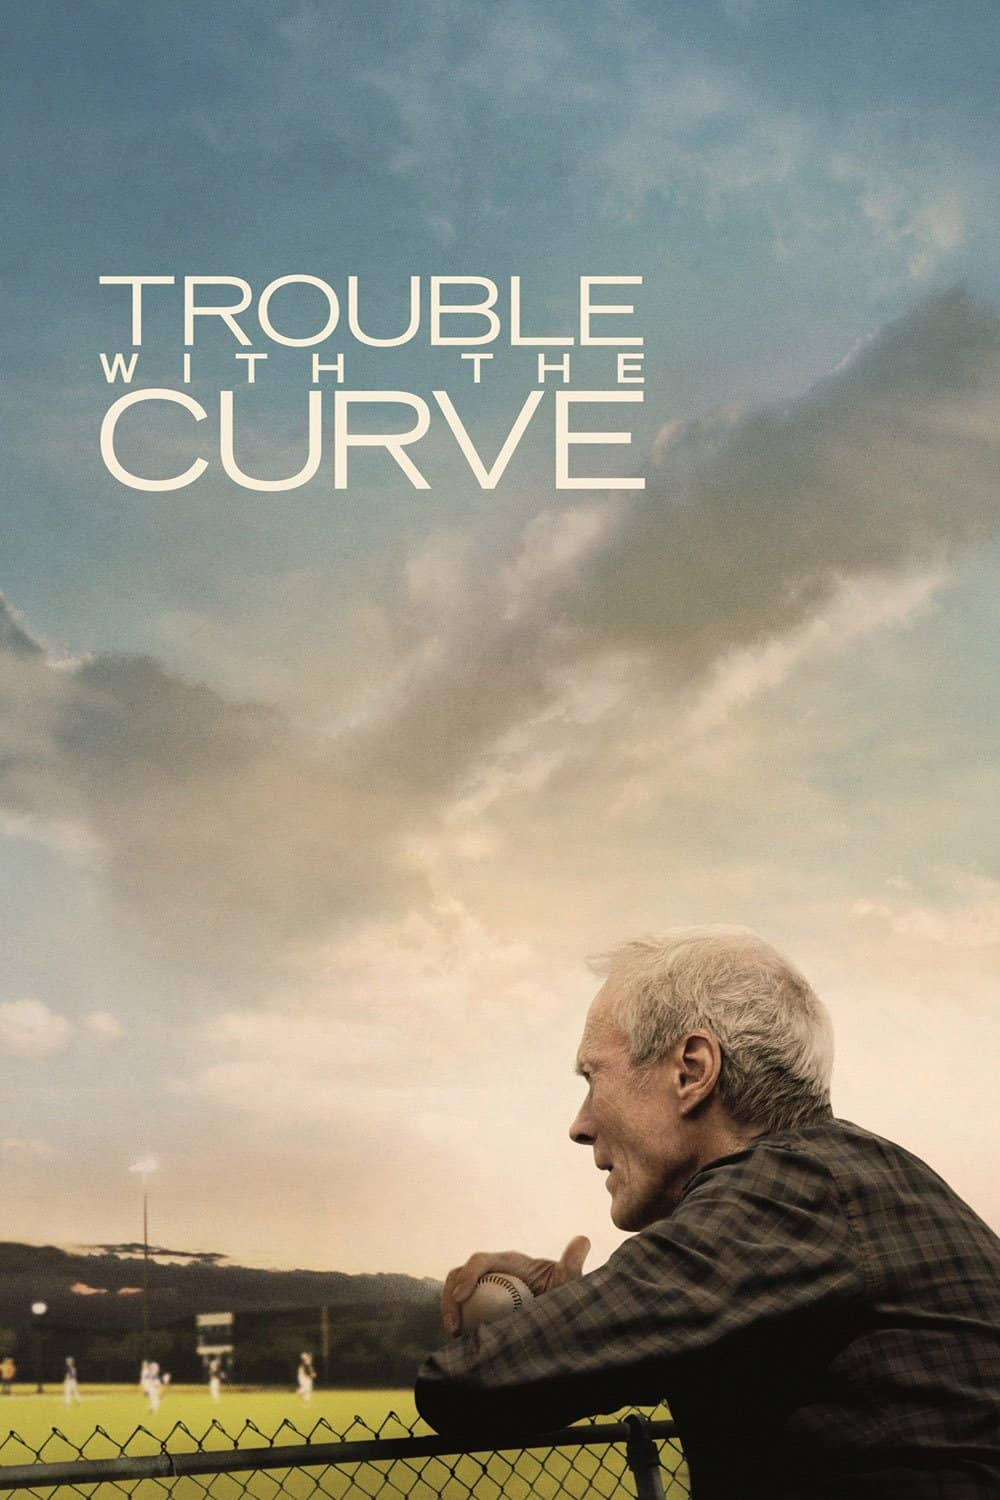 Trouble with the Curve, 2012